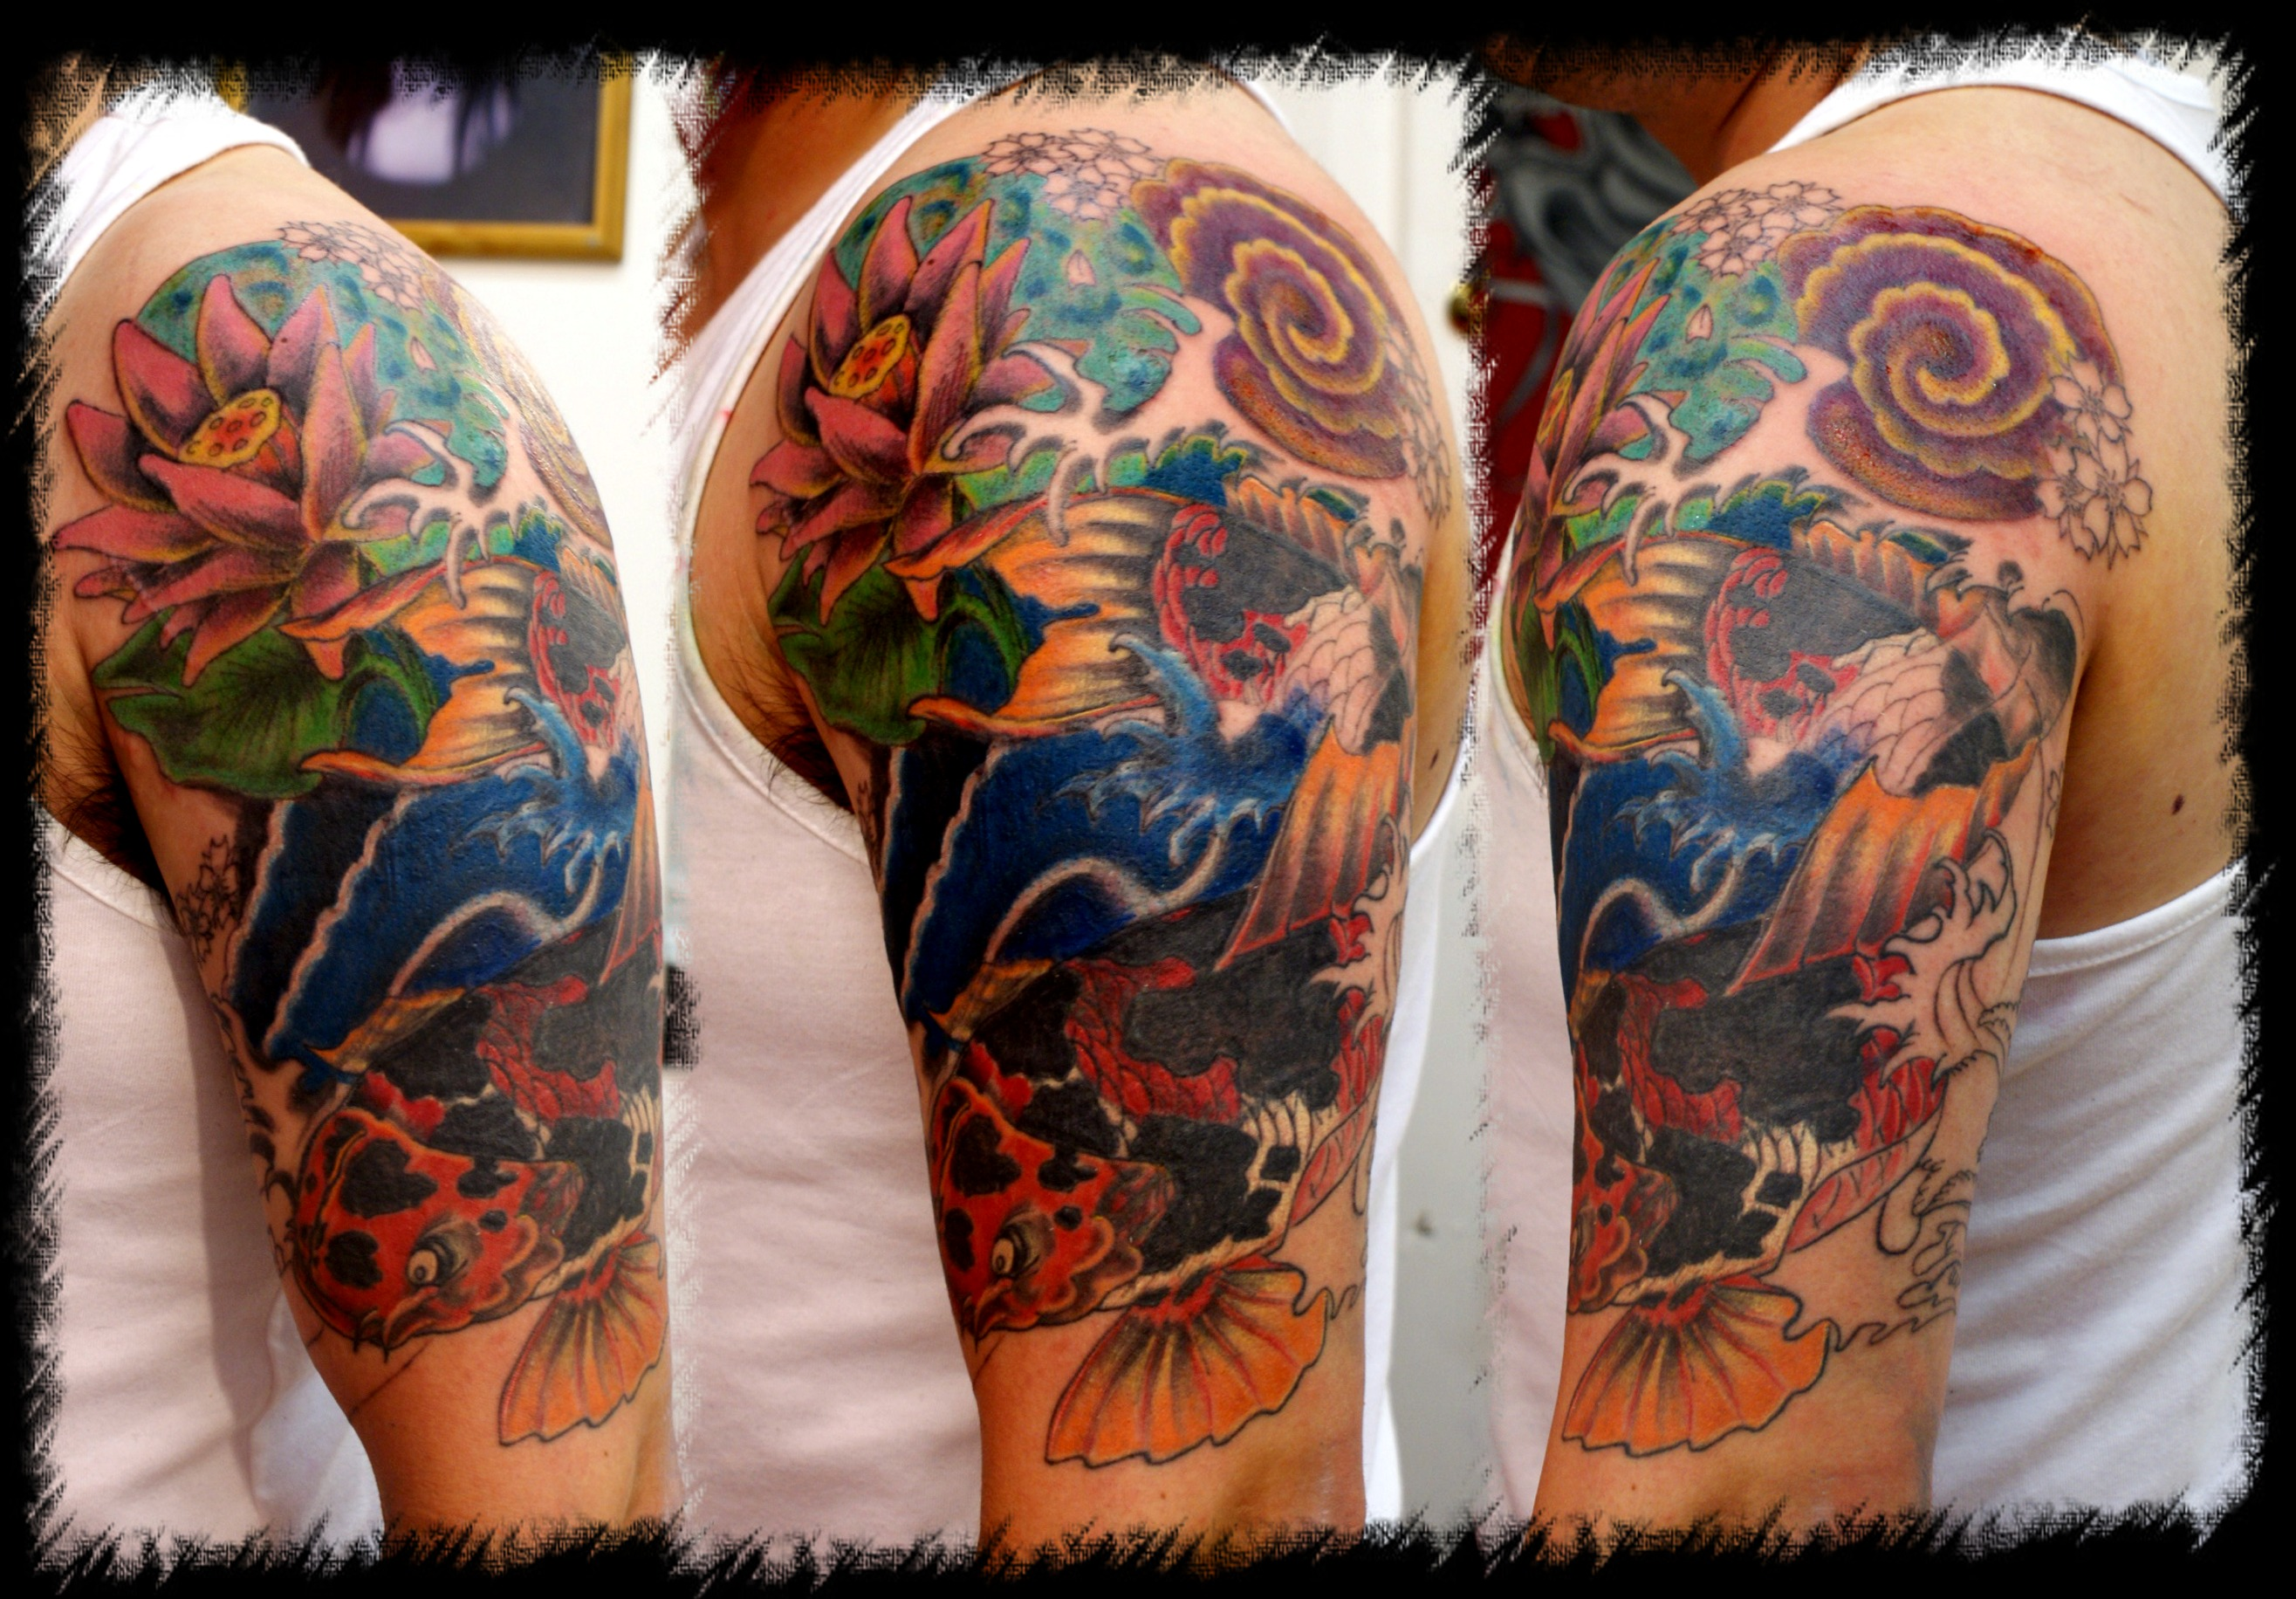 koi cover up w,i,p tattoo picturekoi cover up w,i,p